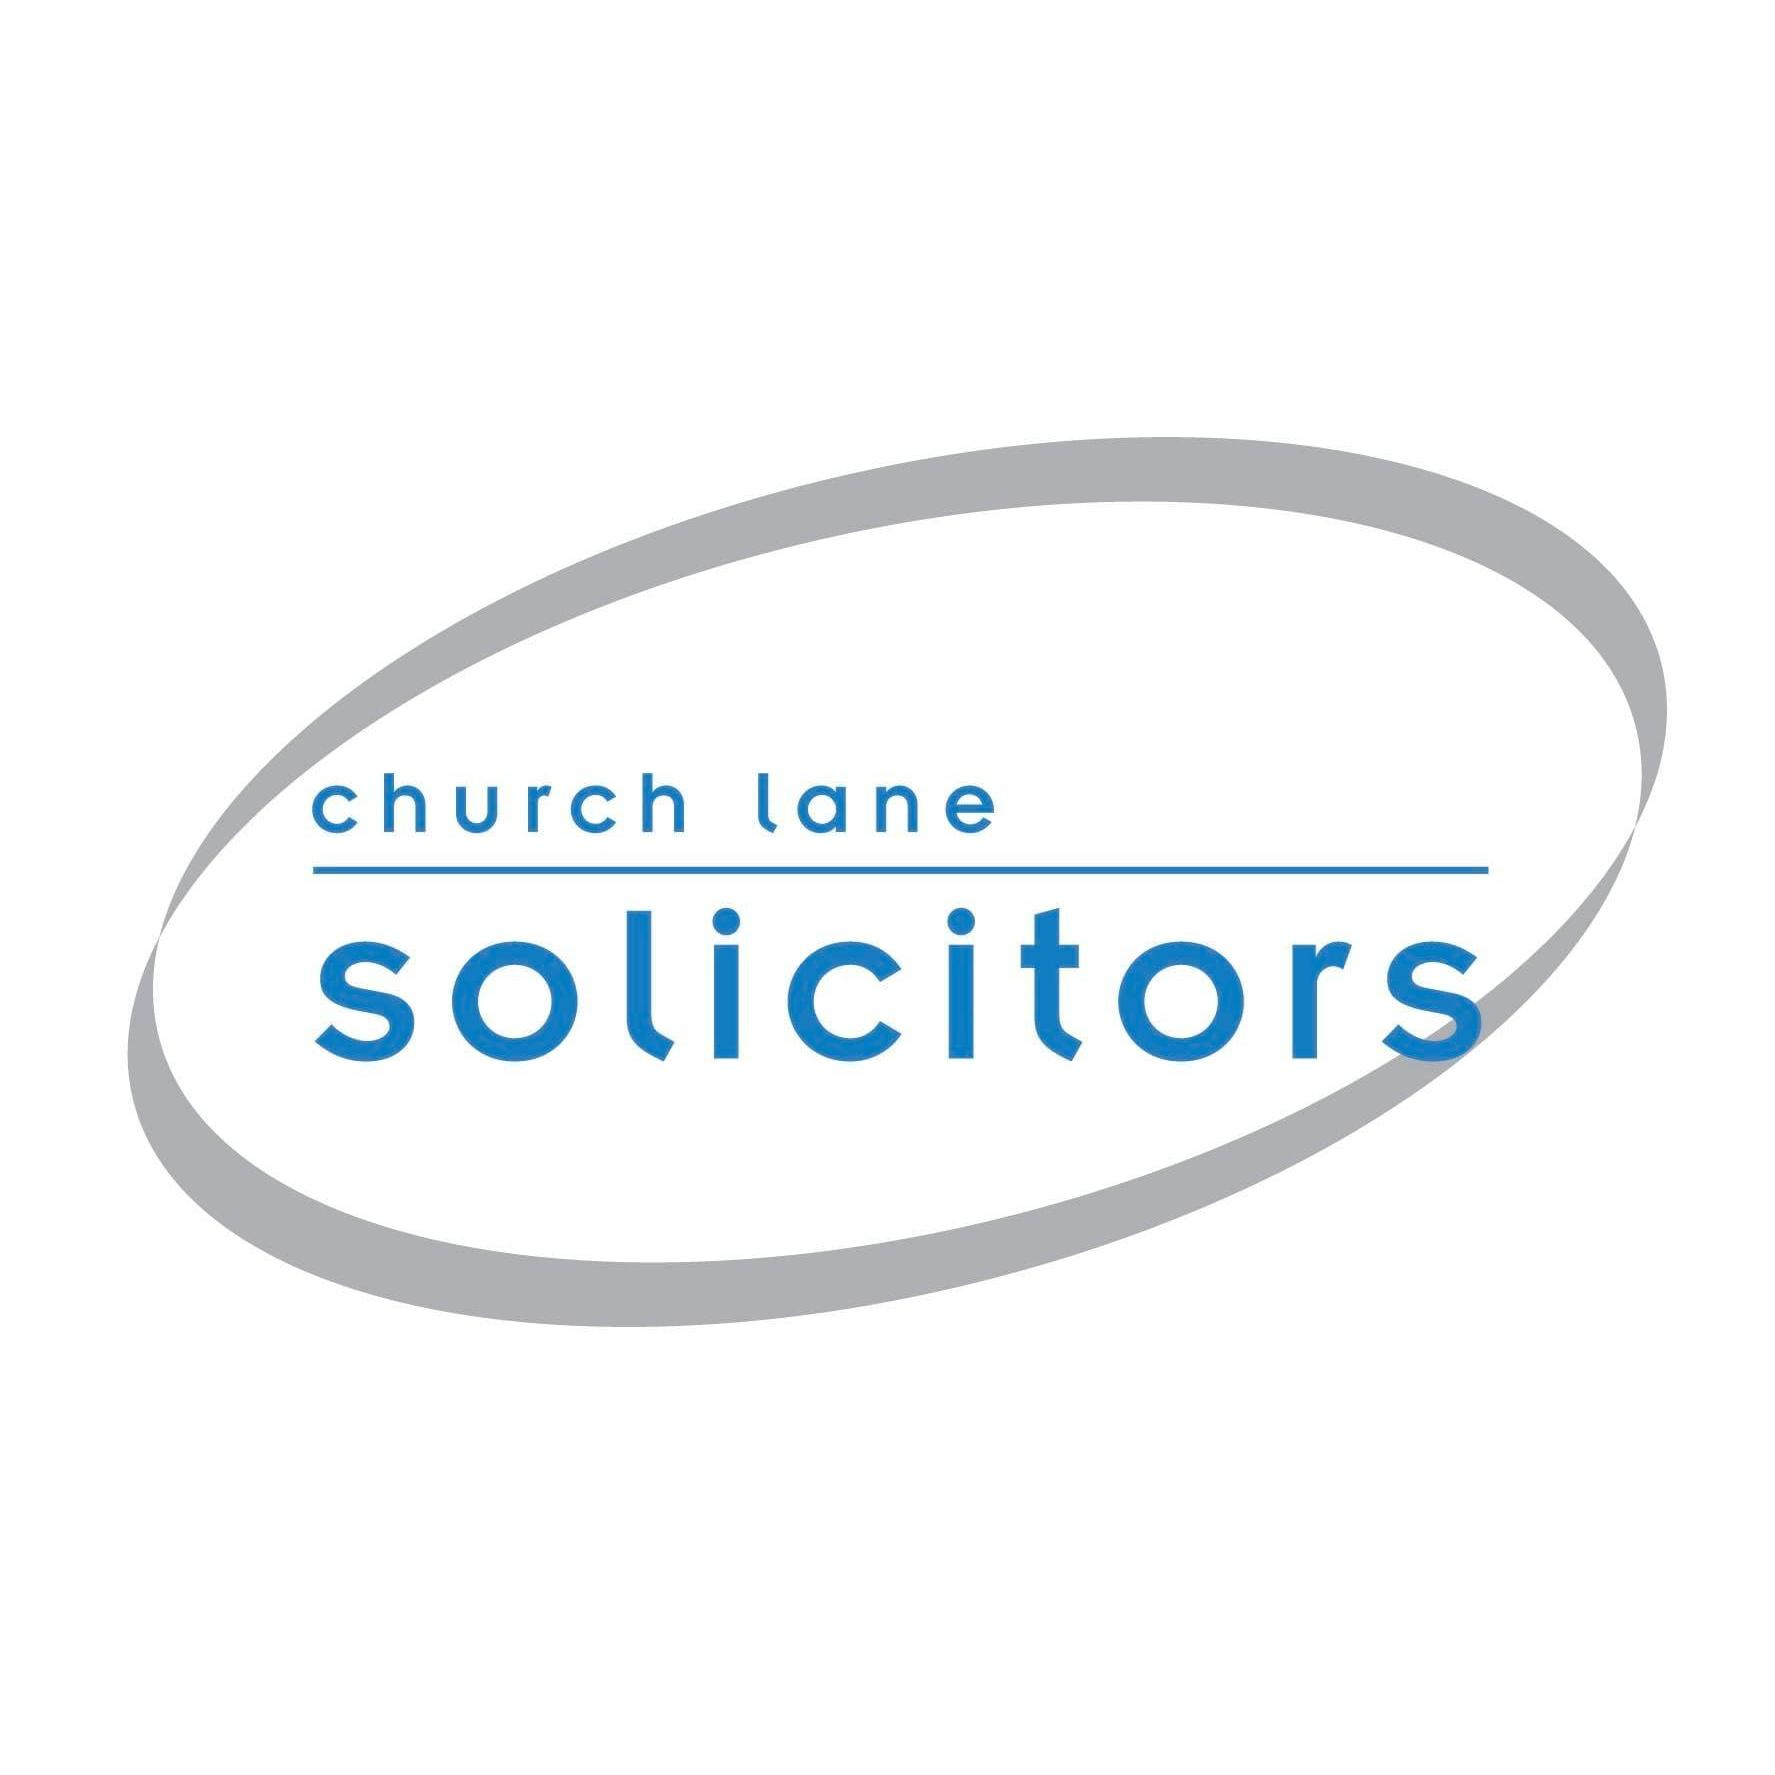 Church Lane Solicitors - London, London E7 8LF - 020 8471 7749 | ShowMeLocal.com